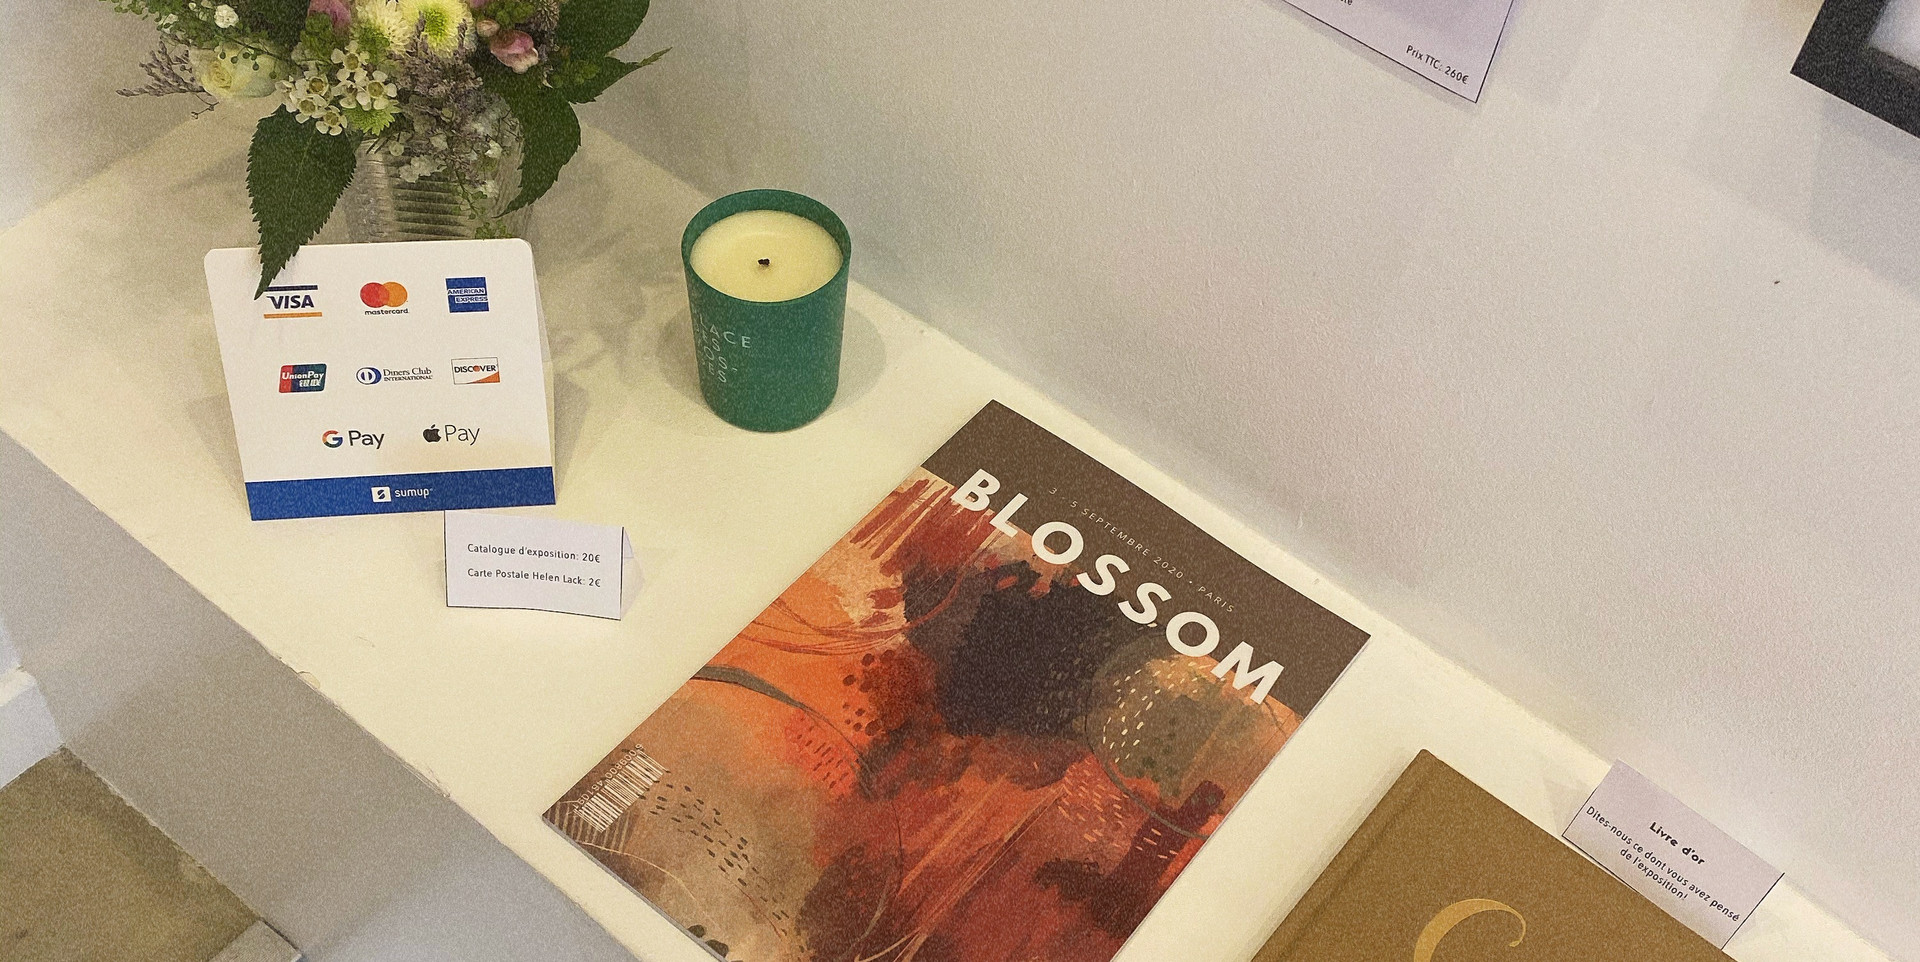 The Blossom Exhibition